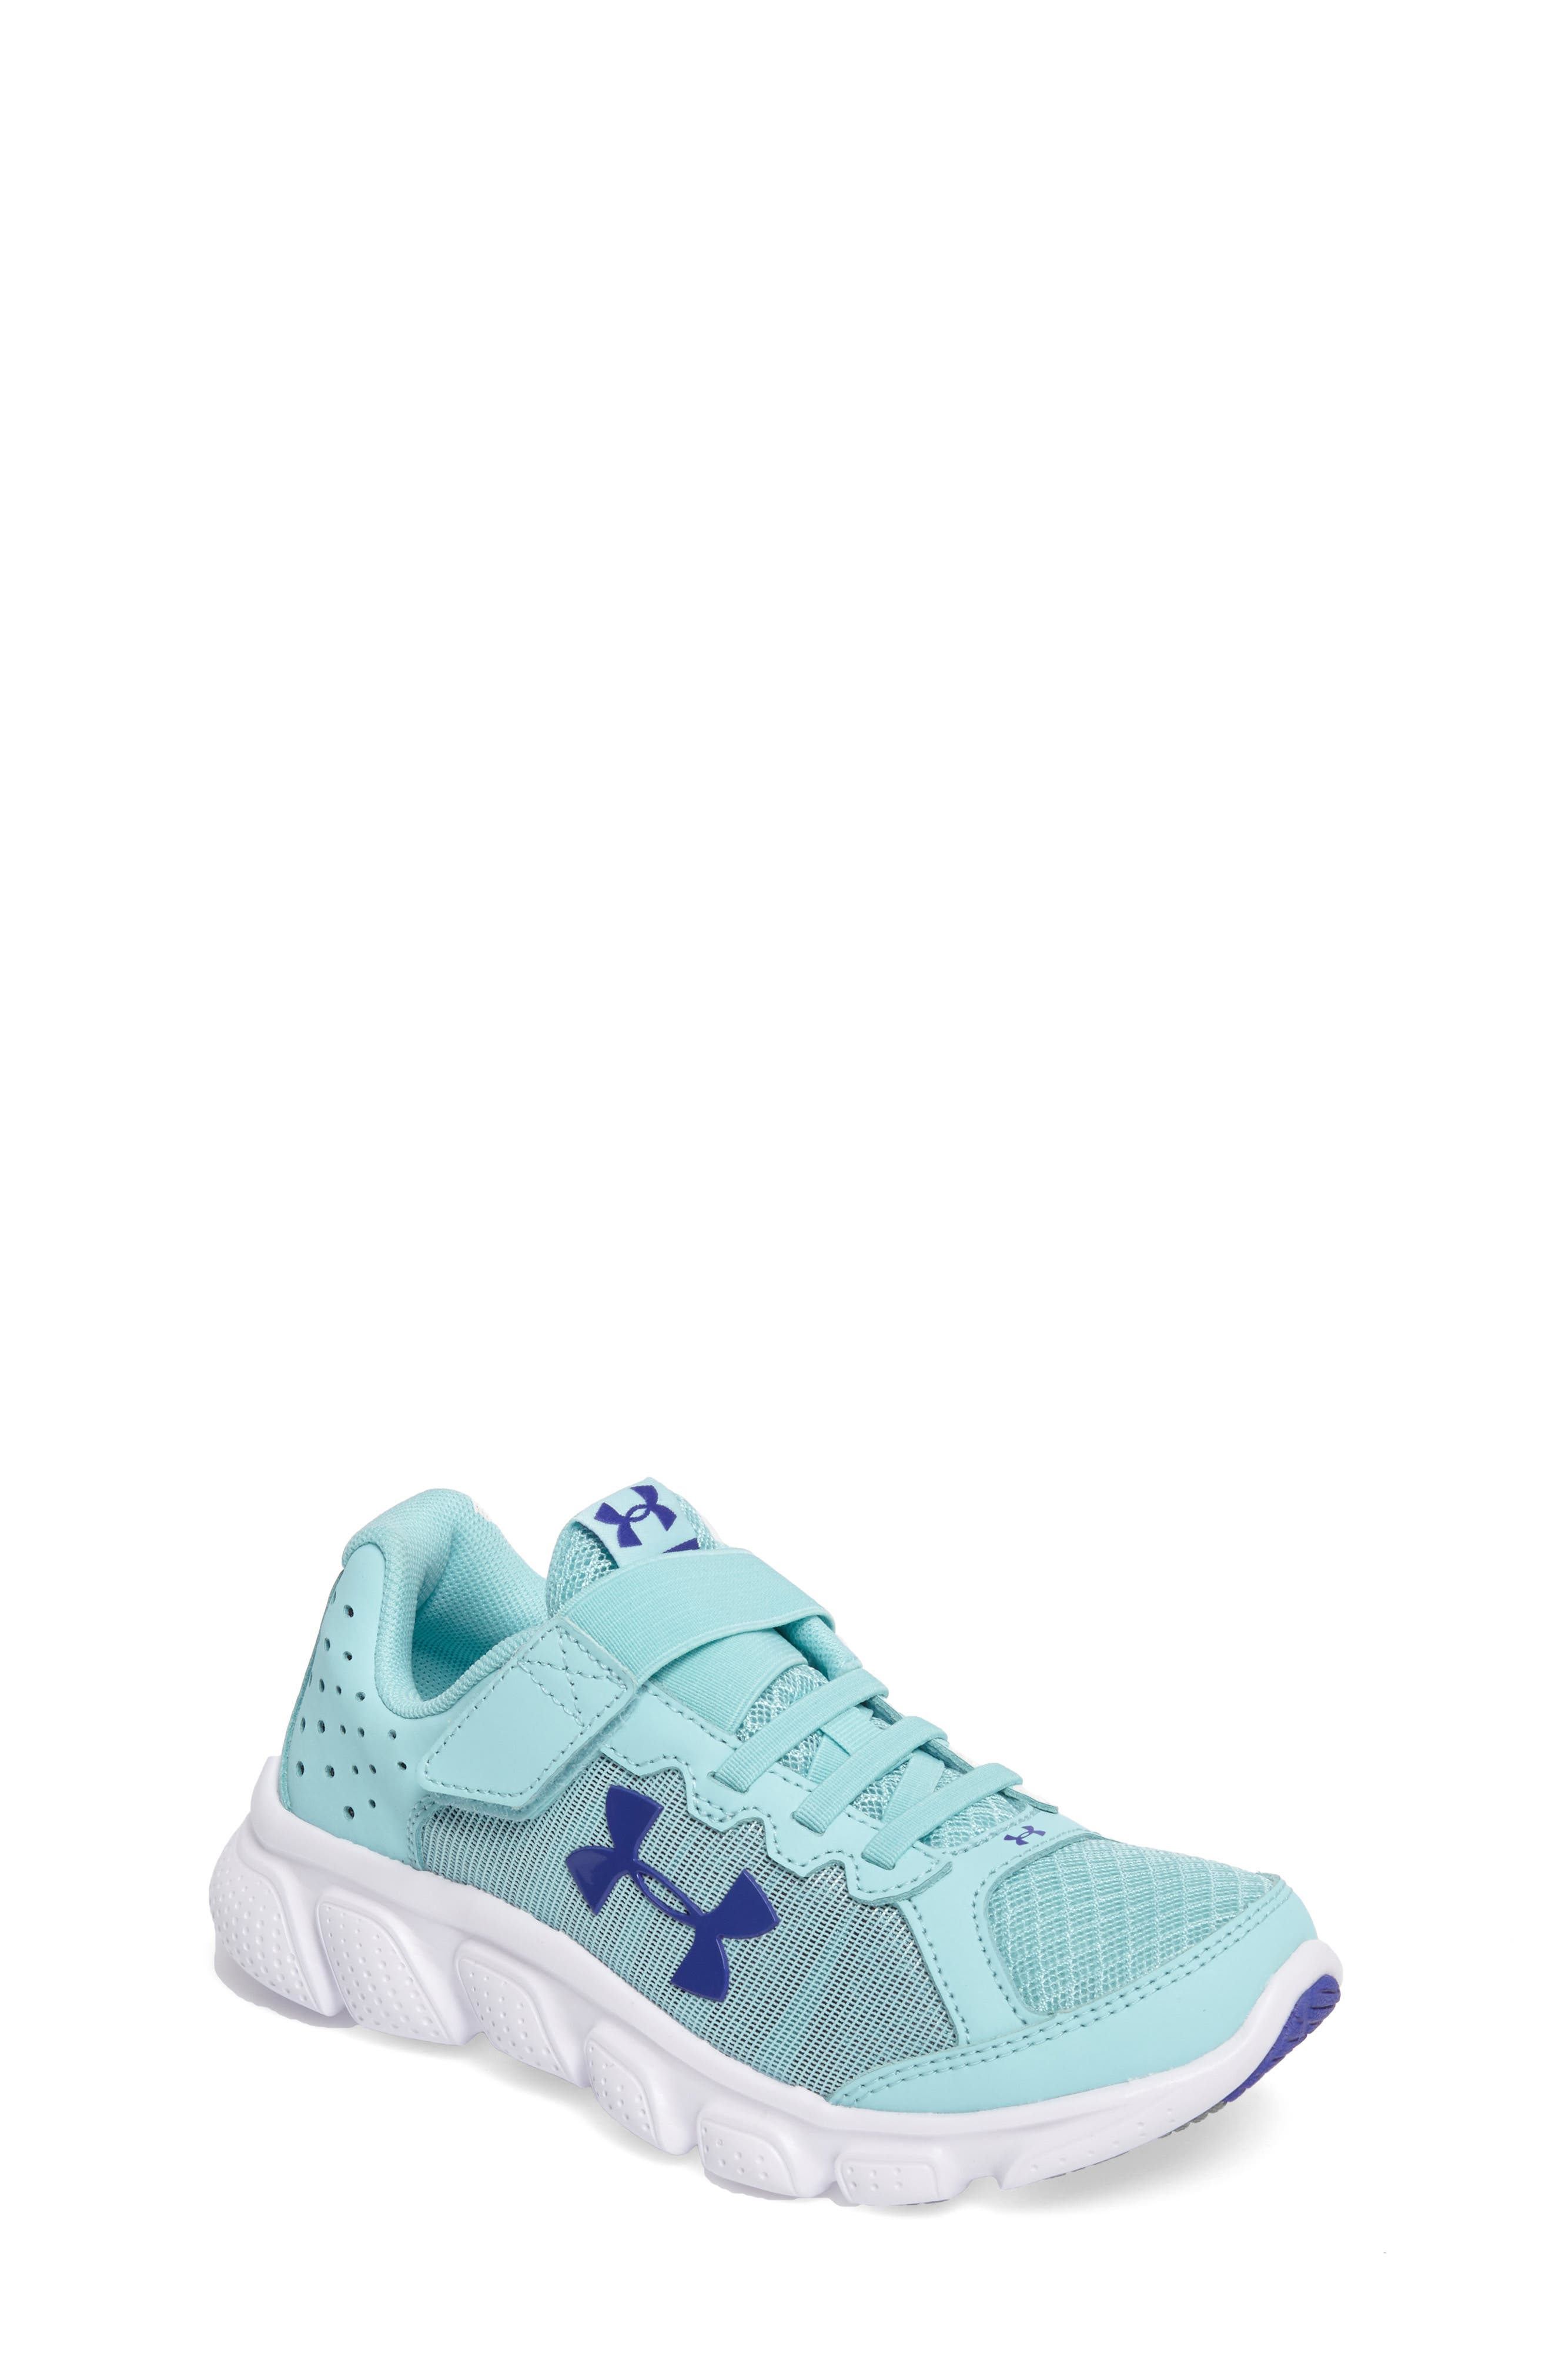 Under Armour Micro G® Assert VI Running Shoe (Walker, Toddler & Little Kid)